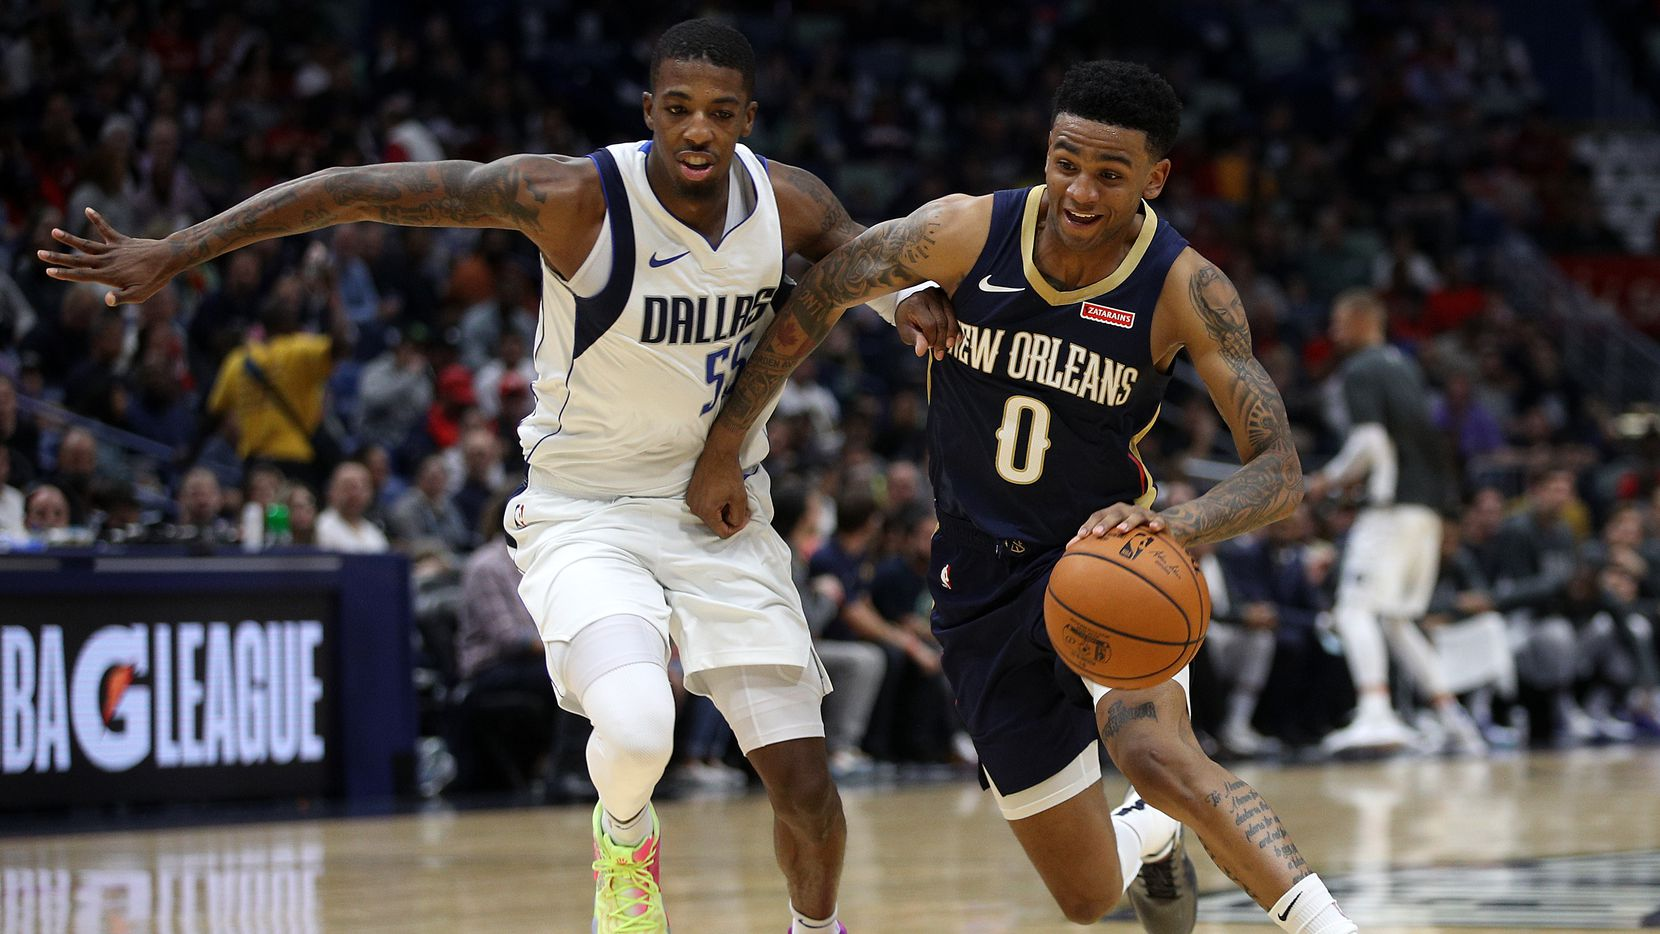 NEW ORLEANS, LOUISIANA - OCTOBER 25: Nickeil Alexander-Walker #0 of the New Orleans Pelicans drives the ball around Delon Wright #55 of the Dallas Mavericks at Smoothie King Center on October 25, 2019 in New Orleans, Louisiana. NOTE TO USER: User expressly acknowledges and agrees that, by downloading and or using this photograph, User is consenting to the terms and conditions of the Getty Images License Agreement.  (Photo by Chris Graythen/Getty Images)